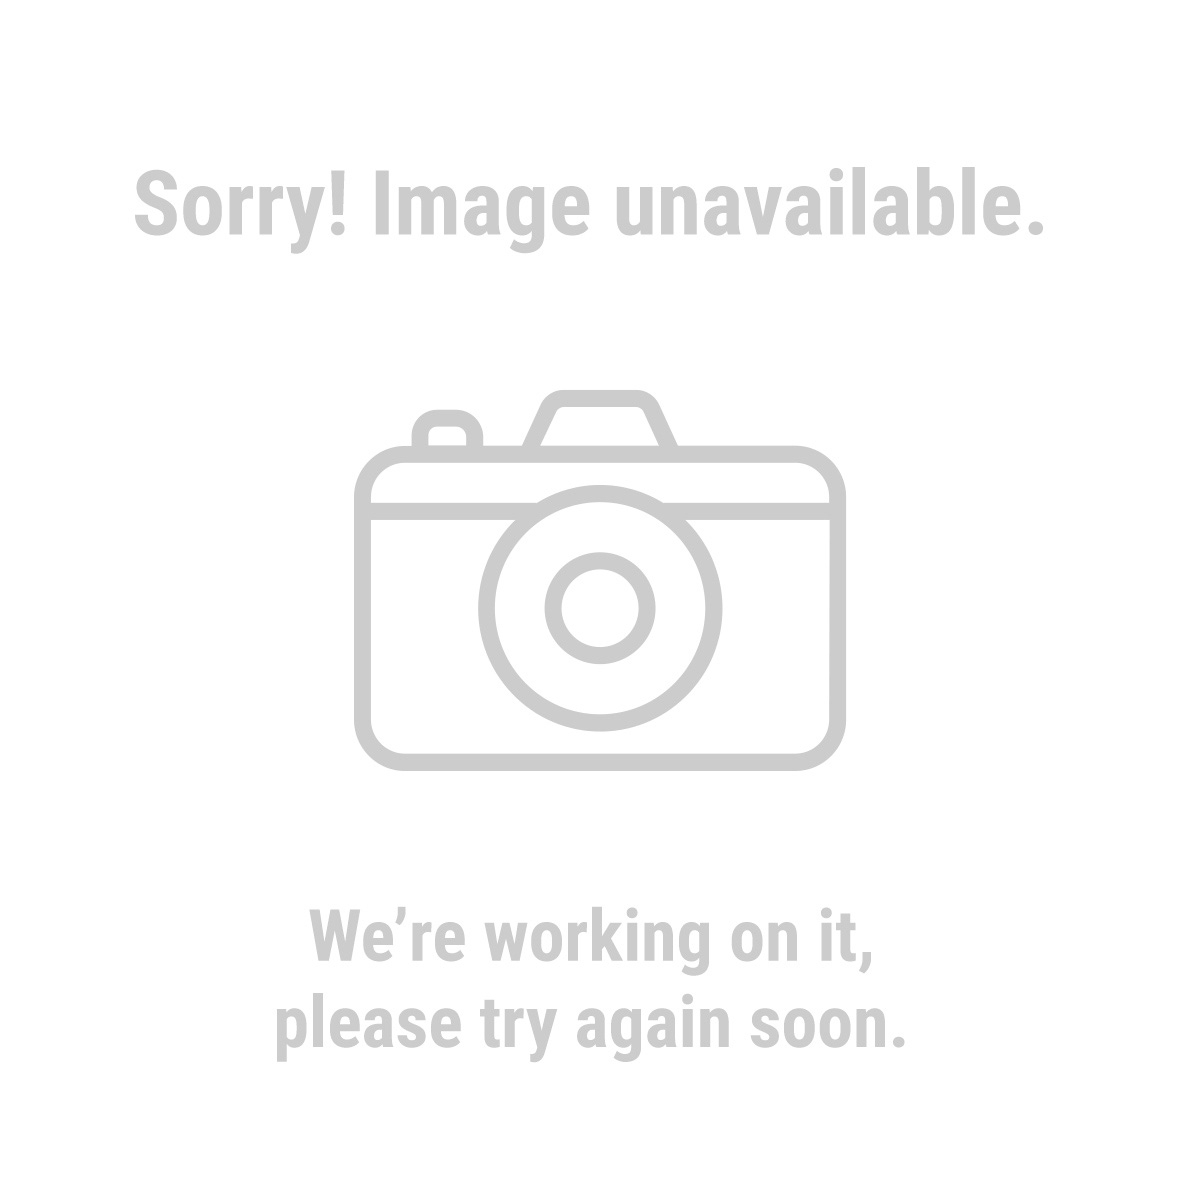 "Lifetime Carbide 40637 1/4"" Carbide-Tipped Tool Bits, 5 Pack"